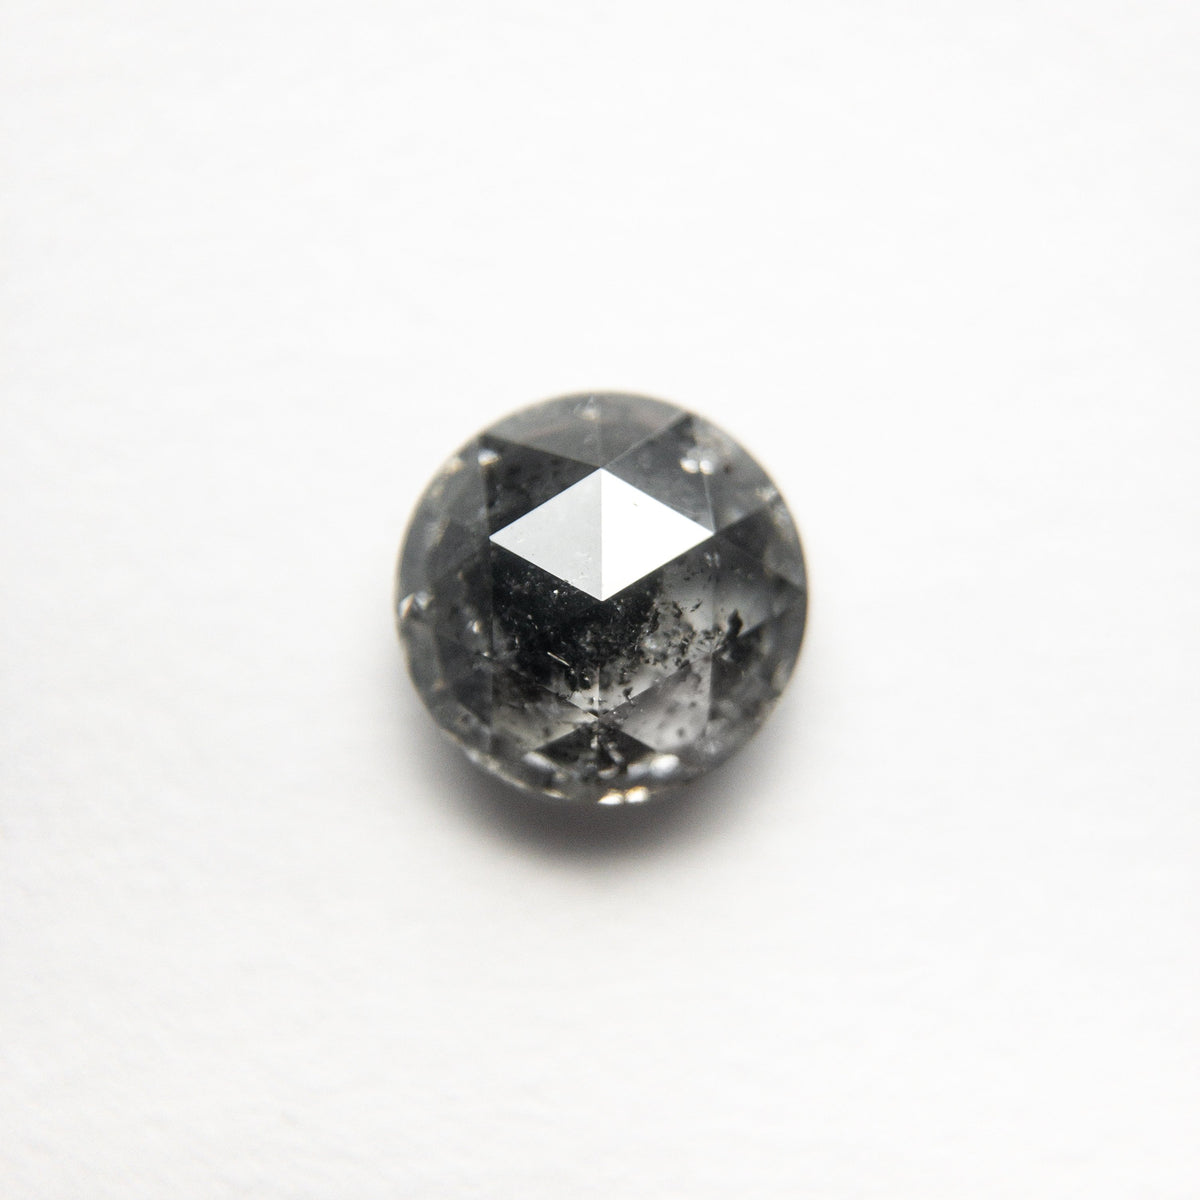 0.94ct 6.08x6.11x3.07mm Round Double Cut 18728-12